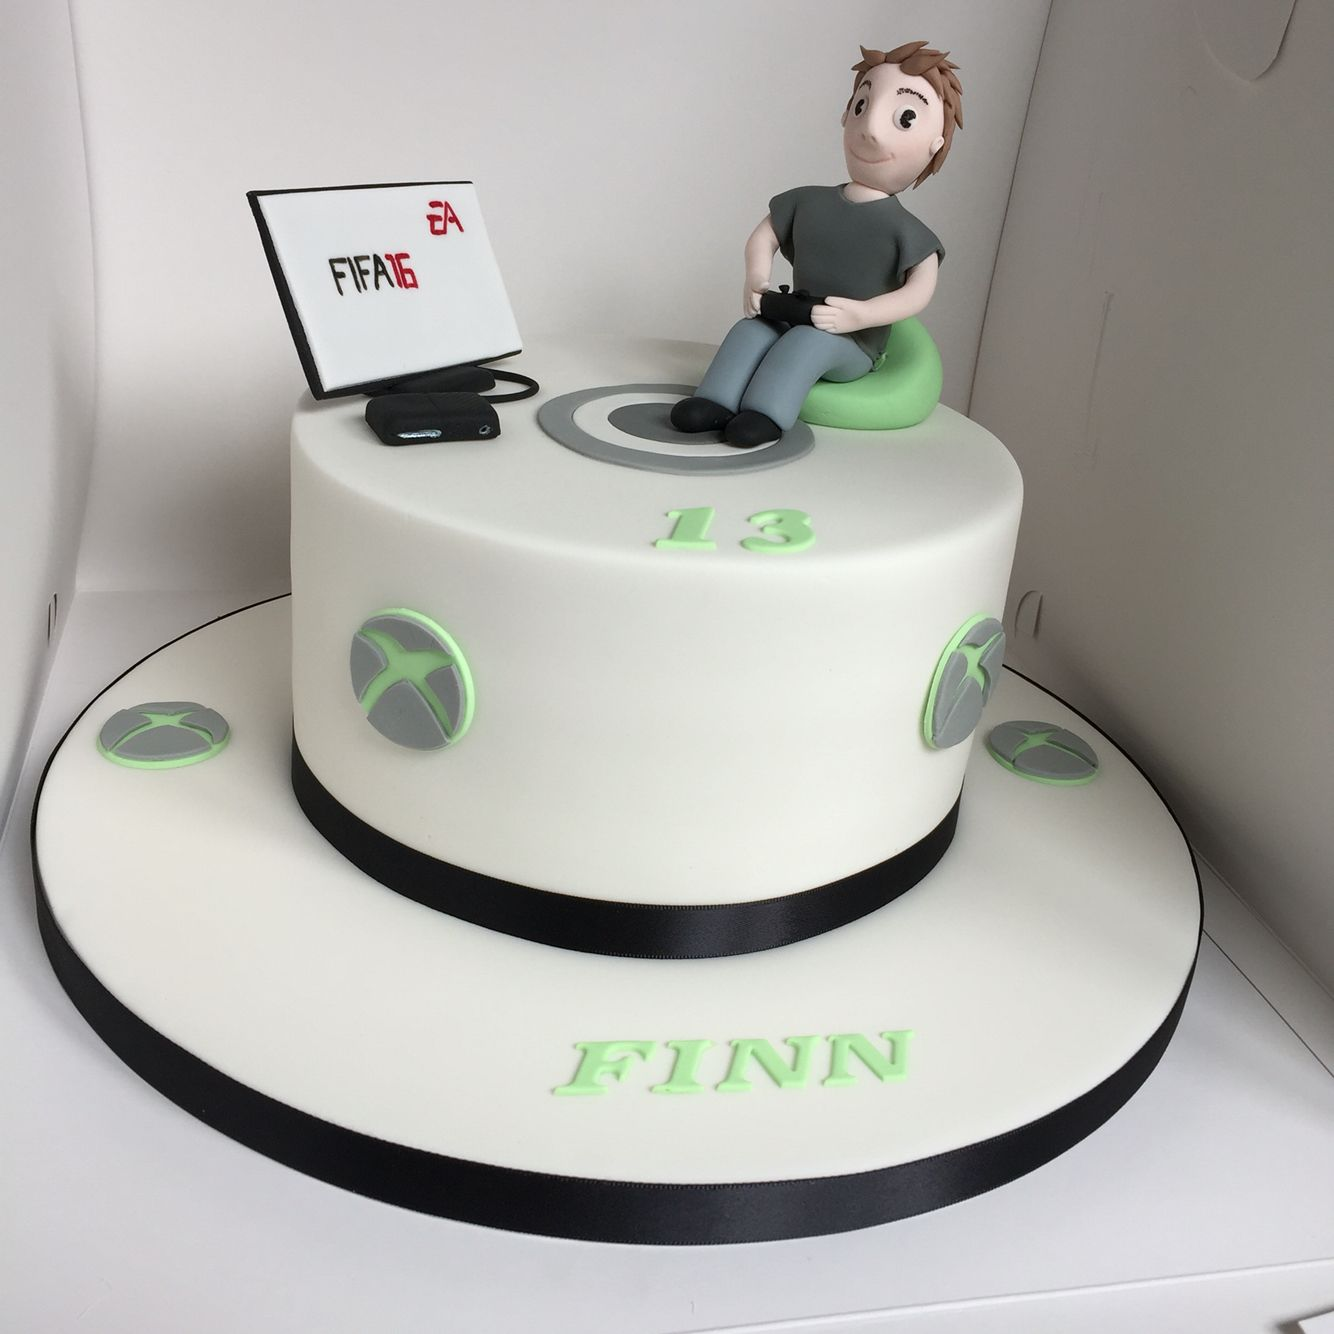 Xbox Fifa16 Birthday Cake For A Teenager Xbox Cake